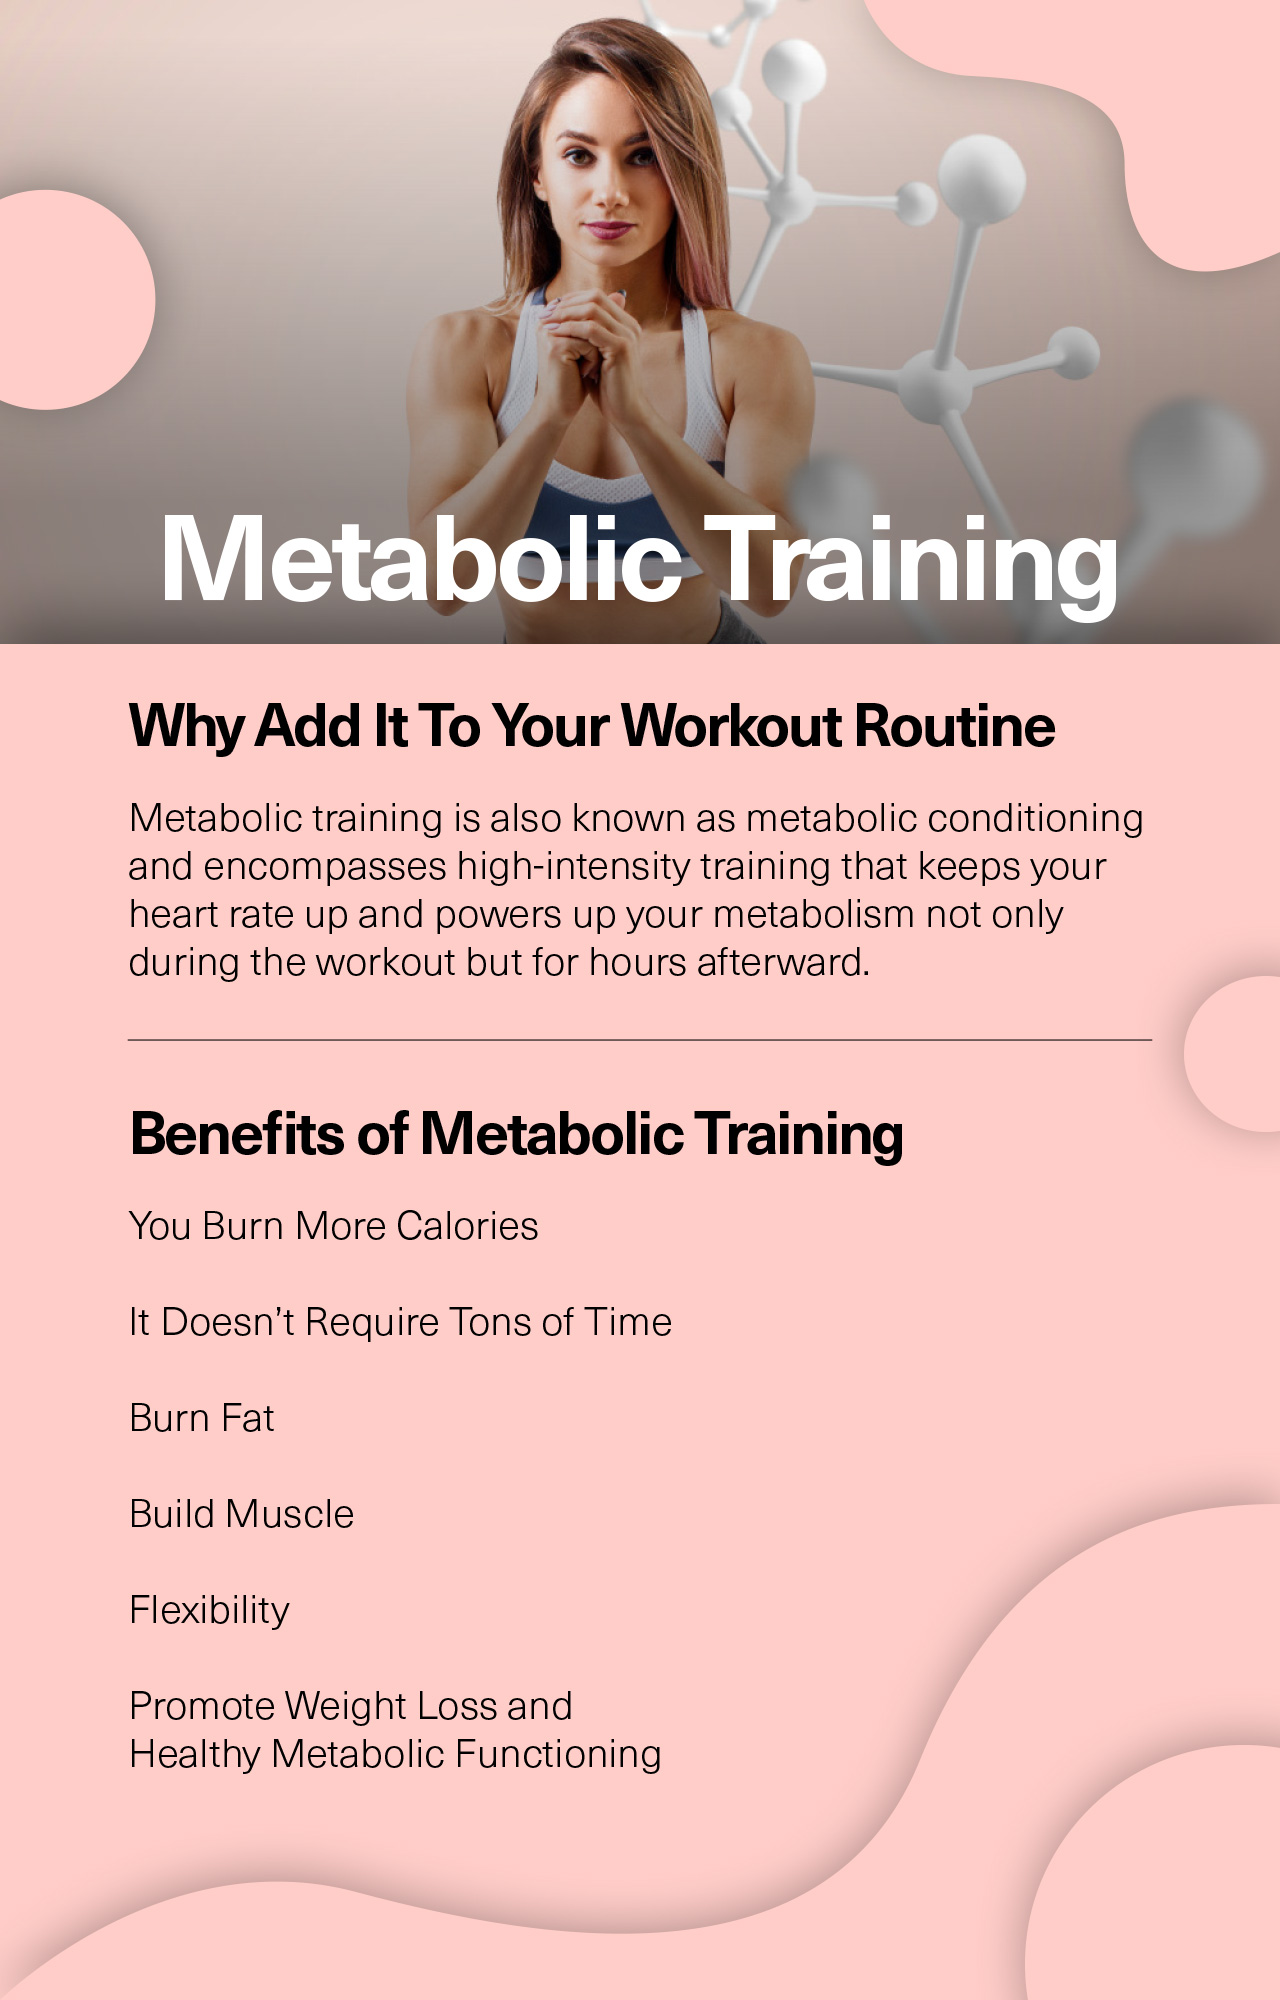 Why Add Metabolic Training To Your Workout Routine